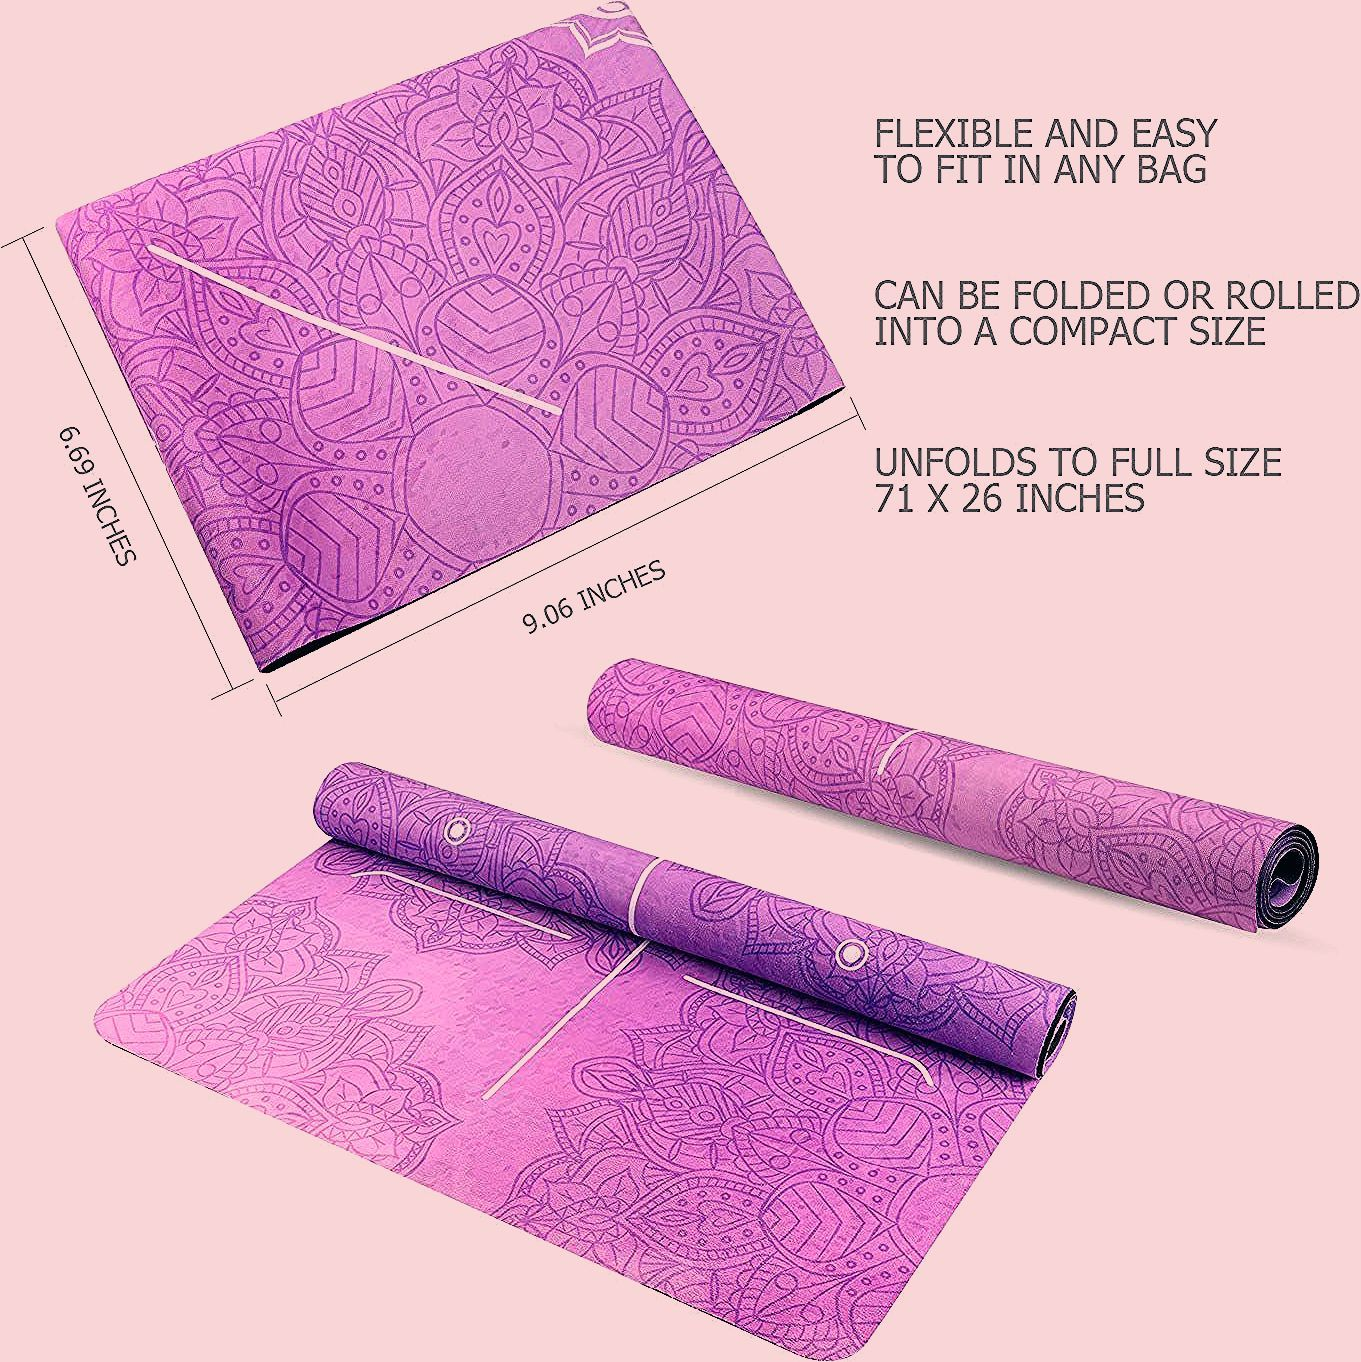 KUYOU Yoga Mat Foldable 1/16 Inch Thick Non-Slip Travel Yoga Mat Cover Pad Sweat Absorbent and Soft...